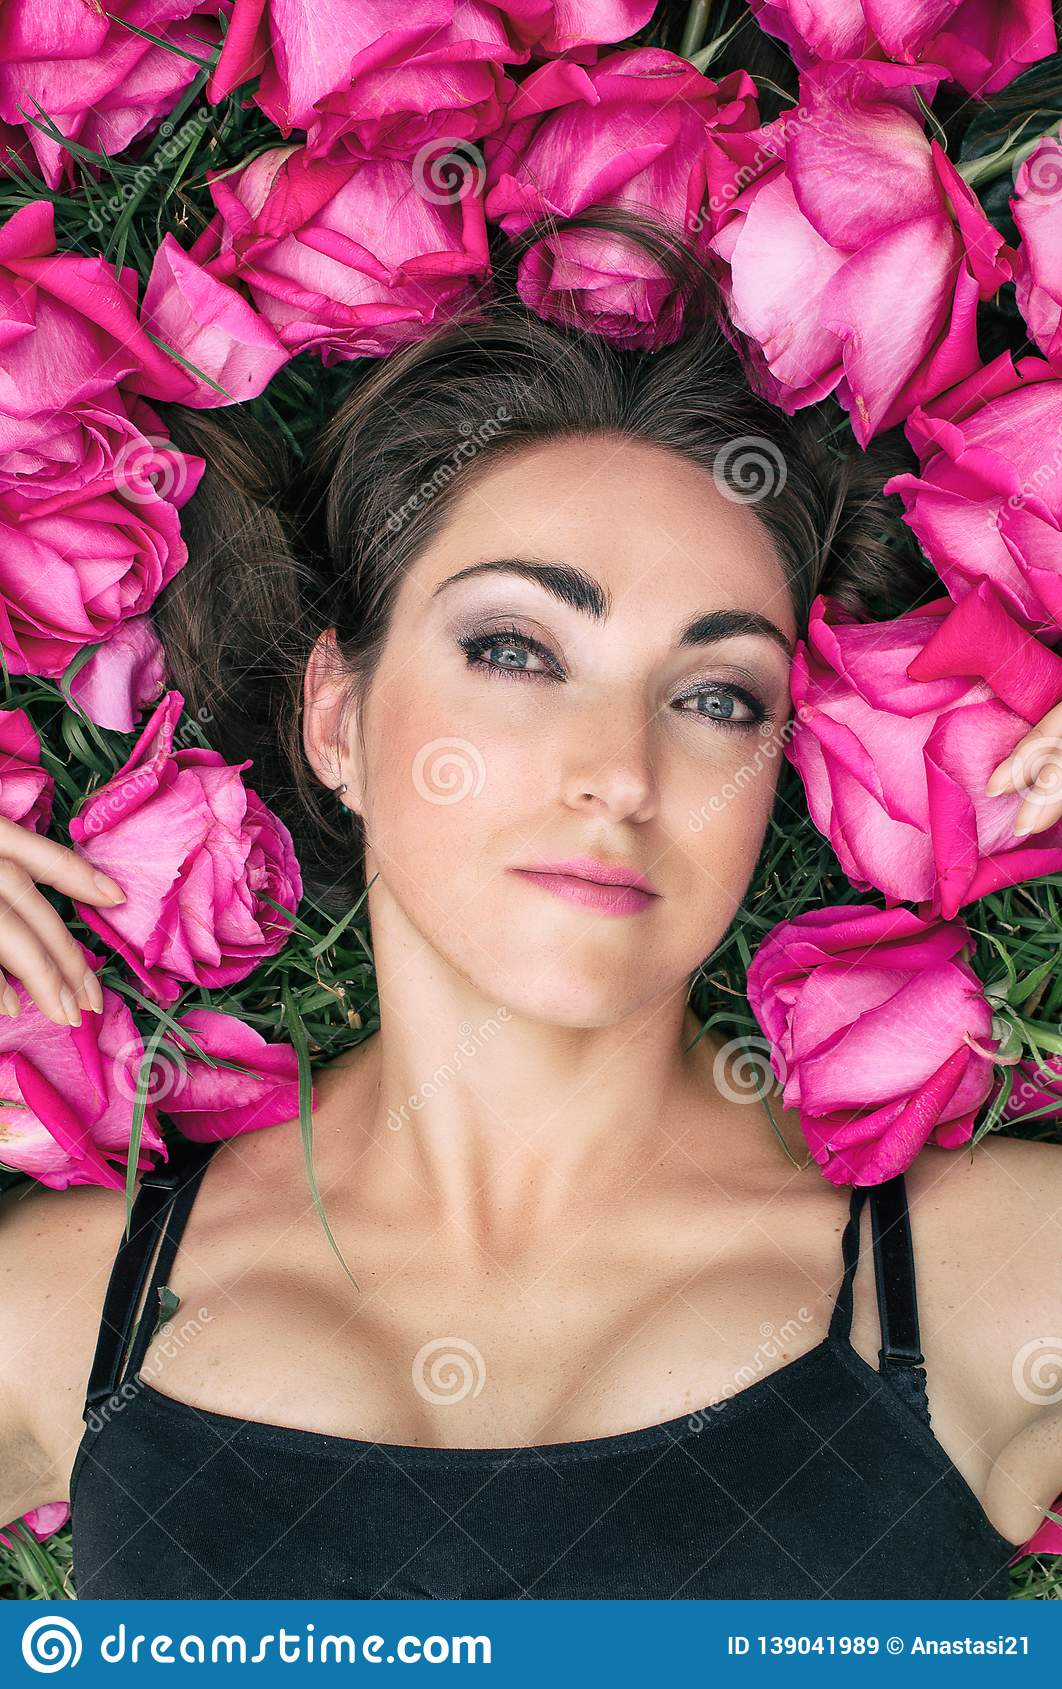 Portrait of a beautiful young woman, she is lying on the grass surrounded by roses. Festive background.